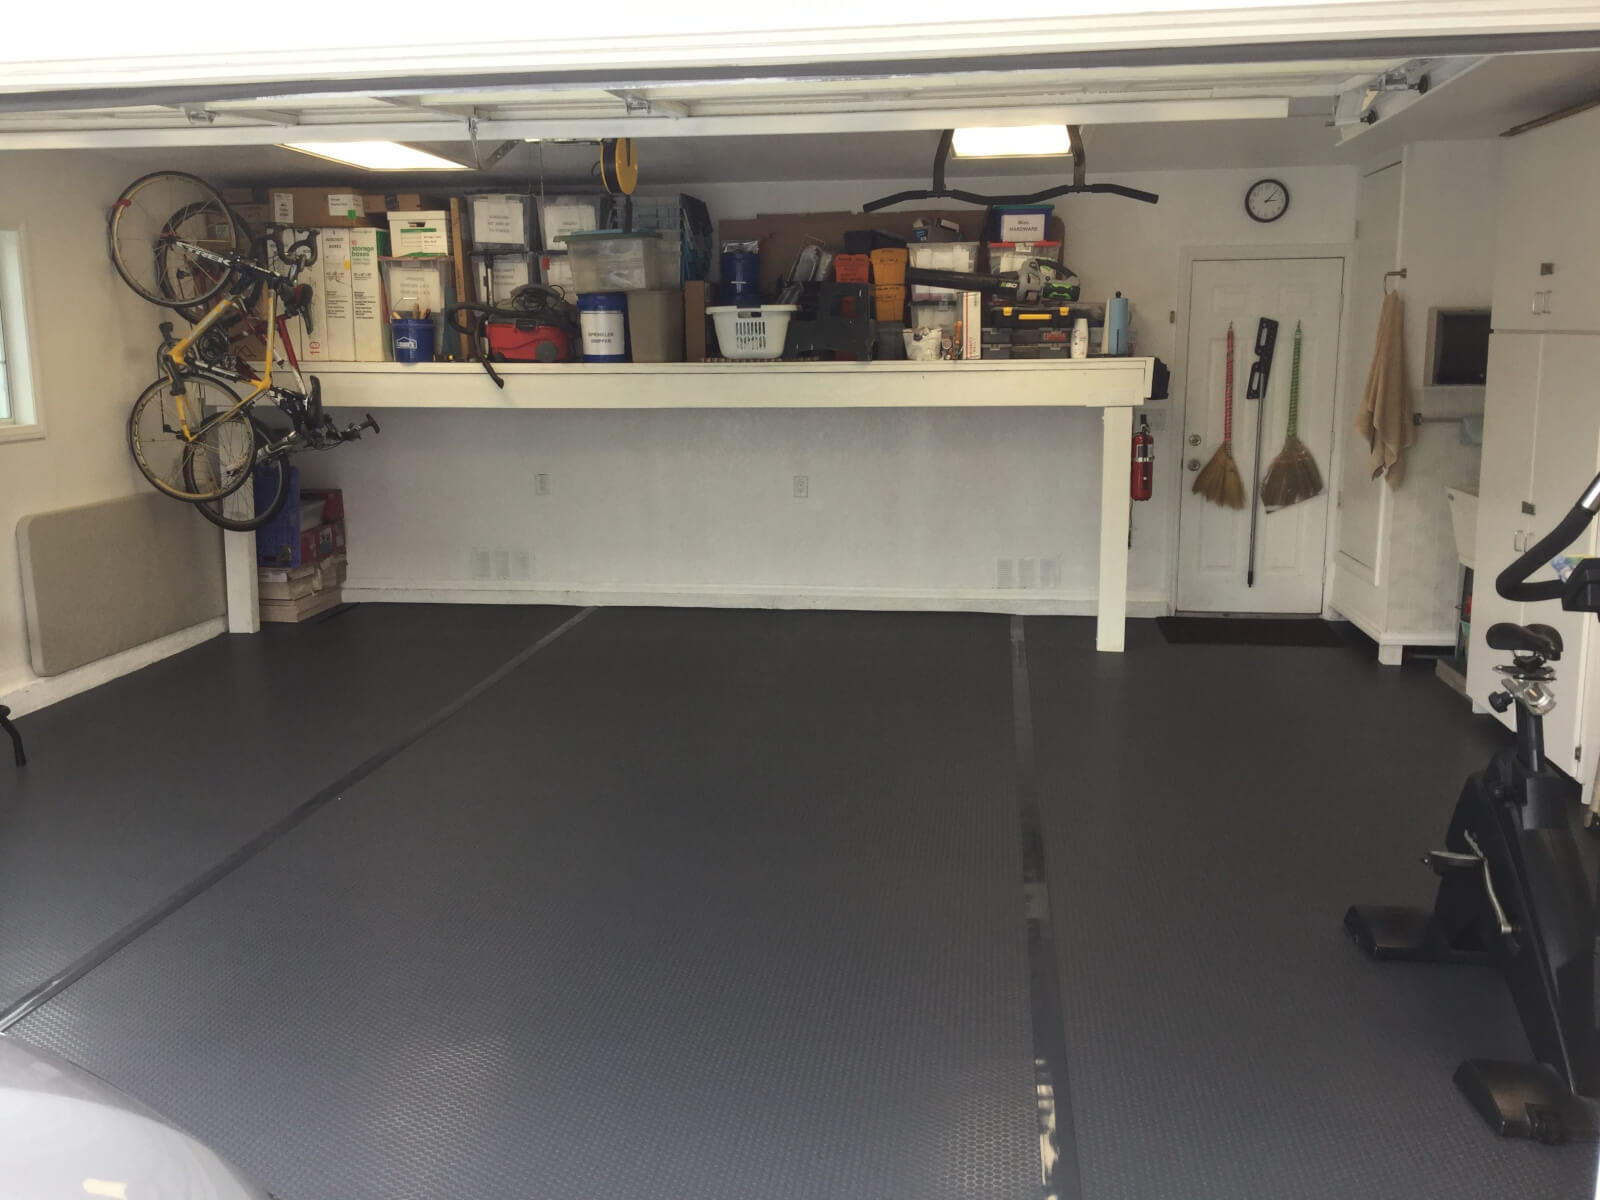 How To Install A GFloor Garage Floor Mat - Padded garage floor mats